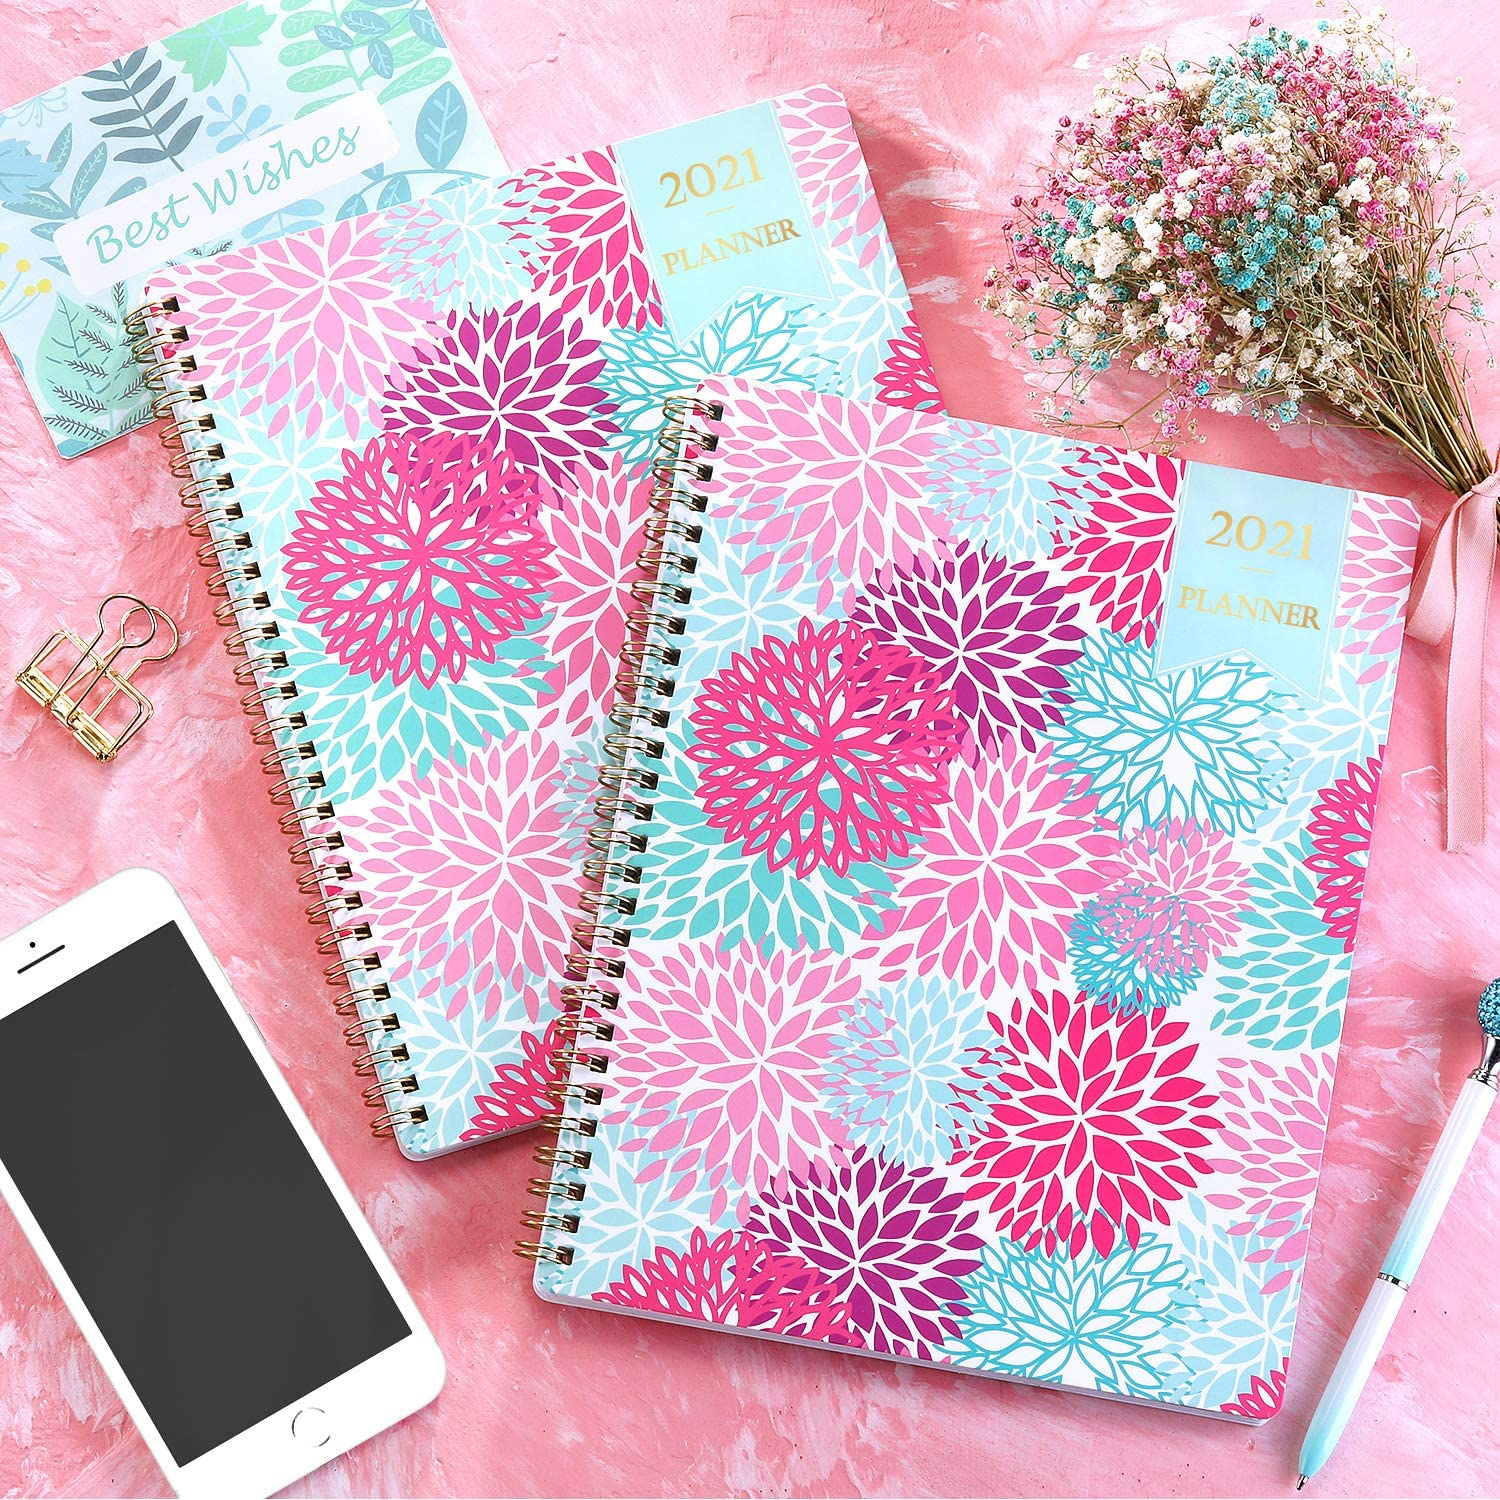 to-Do List Improving Your Time Management Skill Planner 2021 from Jan 2021- Dec 2021 Wire Binding 7.65 x 9.85 Weekly /& Monthly Layout Flexible Cover Strong Twin Planner 2021